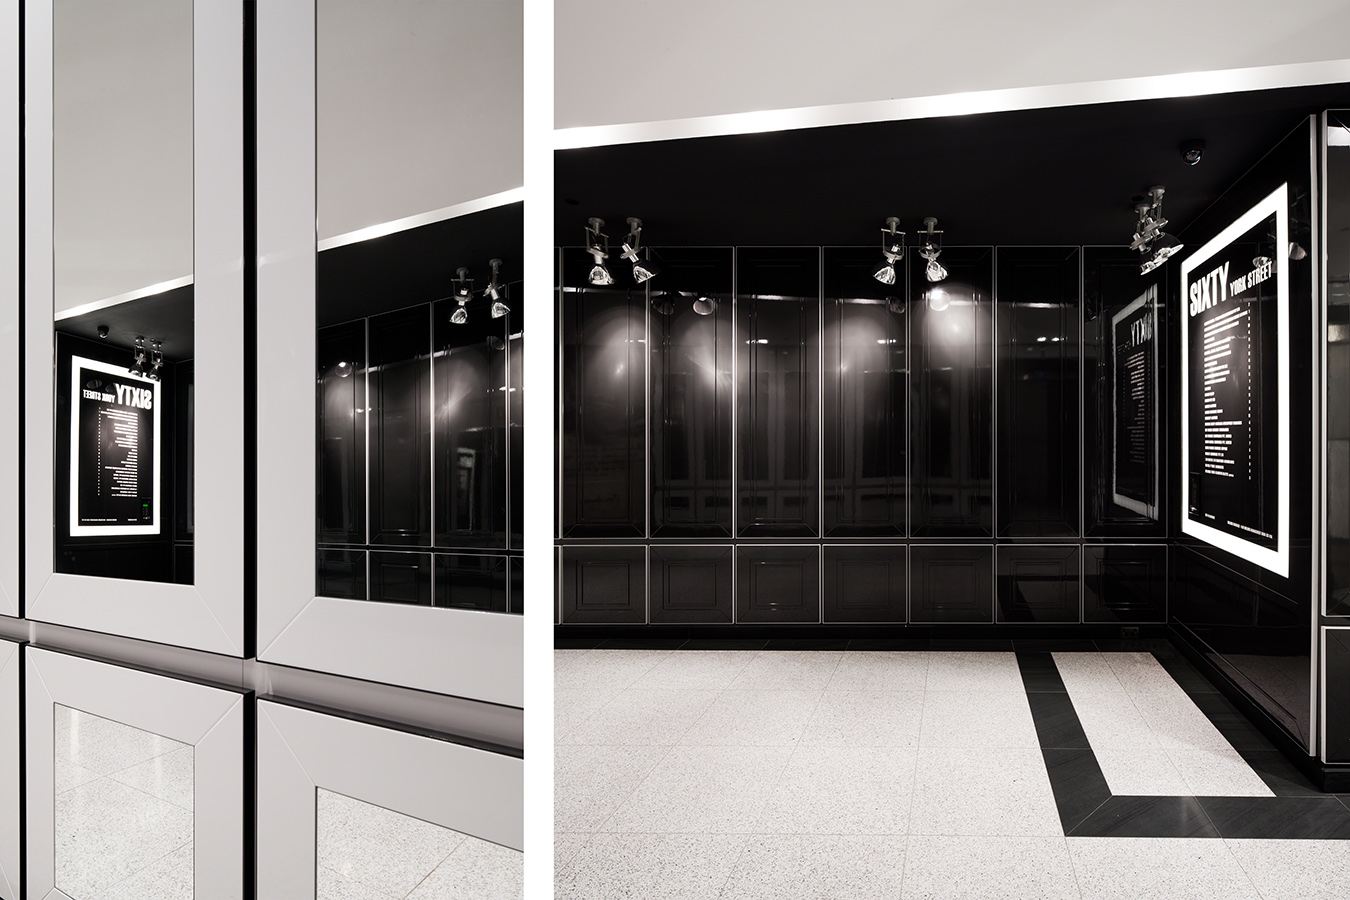 66 YORK ST FOYER FOR BLAINEY NORTH AND ASSOCIATES